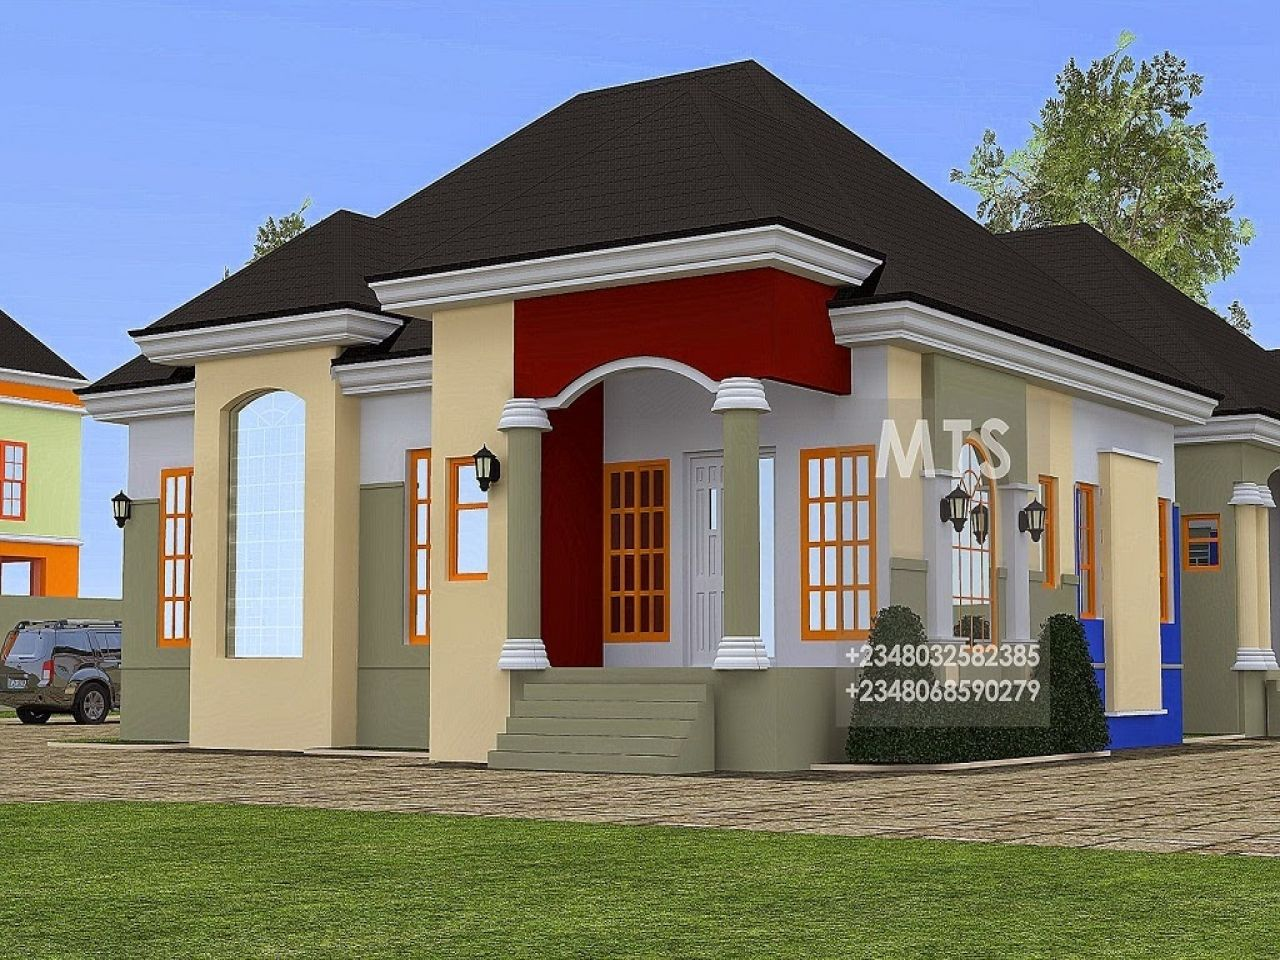 2 Bedroom Bungalow Design In Nigeria House Front Design Bungalow House Design Bungalow Design